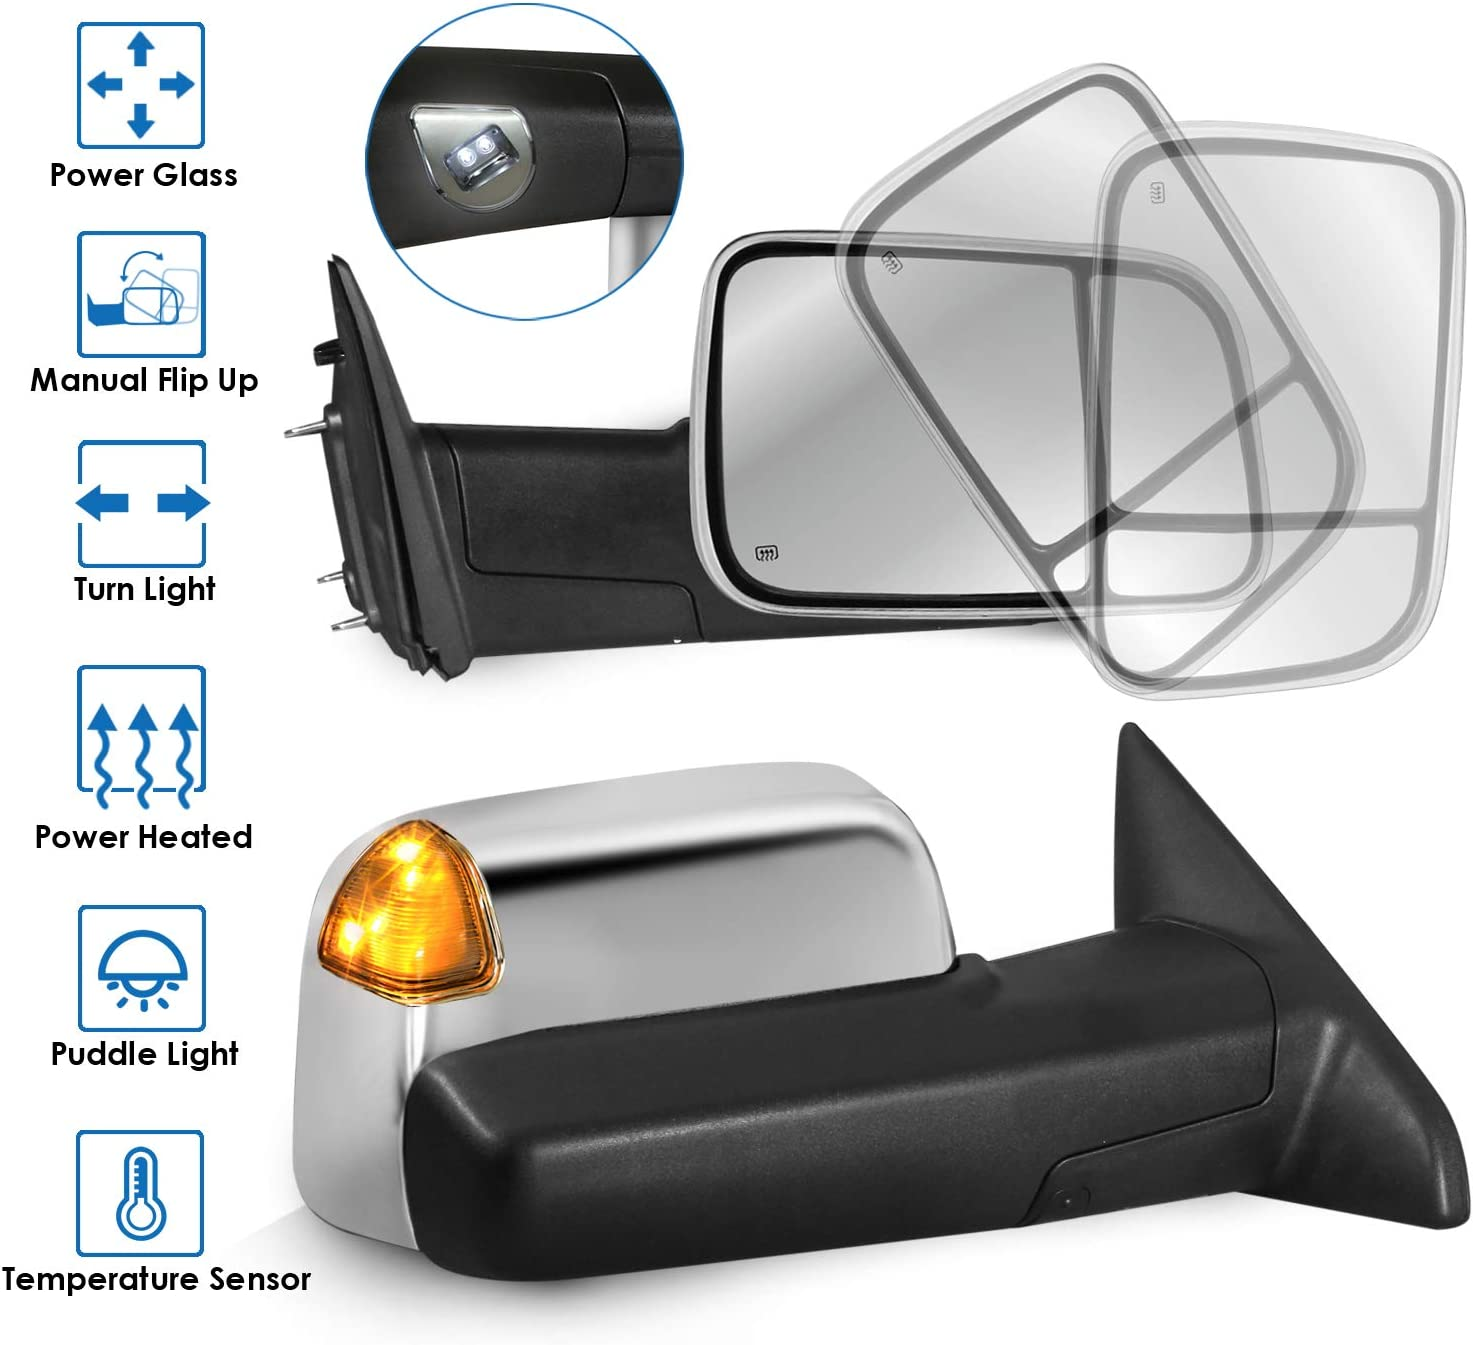 SCITOO Towing Mirrors Fit for 2009-2016 Ram 1500 2500 3500 Pickup Tow Mirrors Pair Set Driver Passenger Black Housing Power Adjusted Heated Side View Mirrors